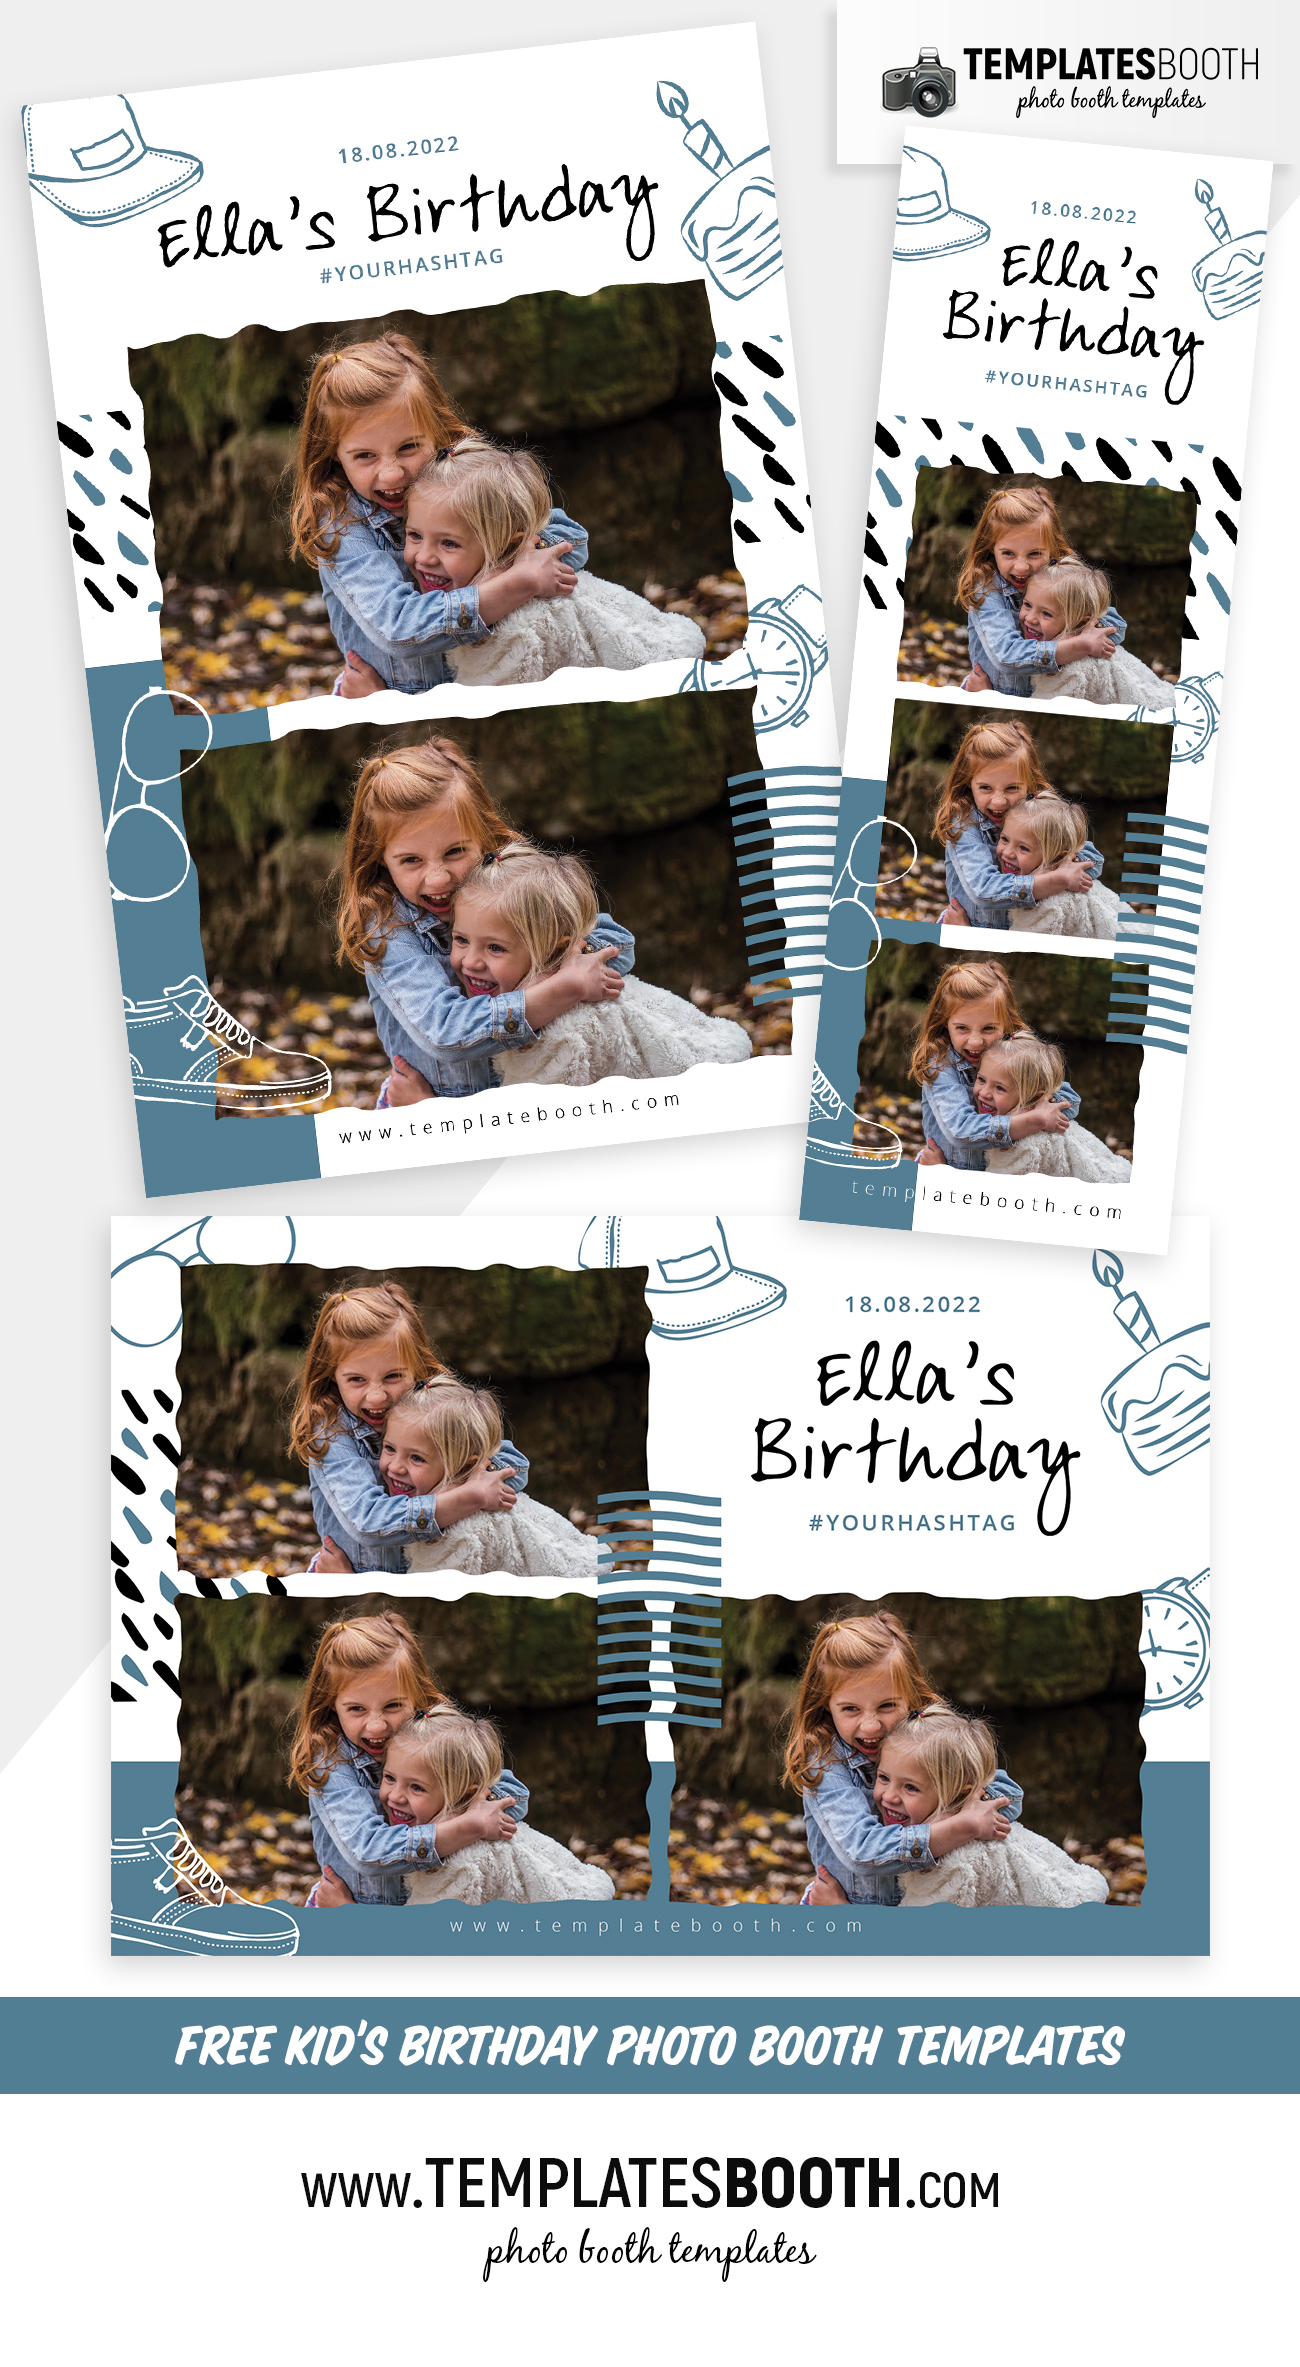 Free Kid's Birthday Photo Booth Templates